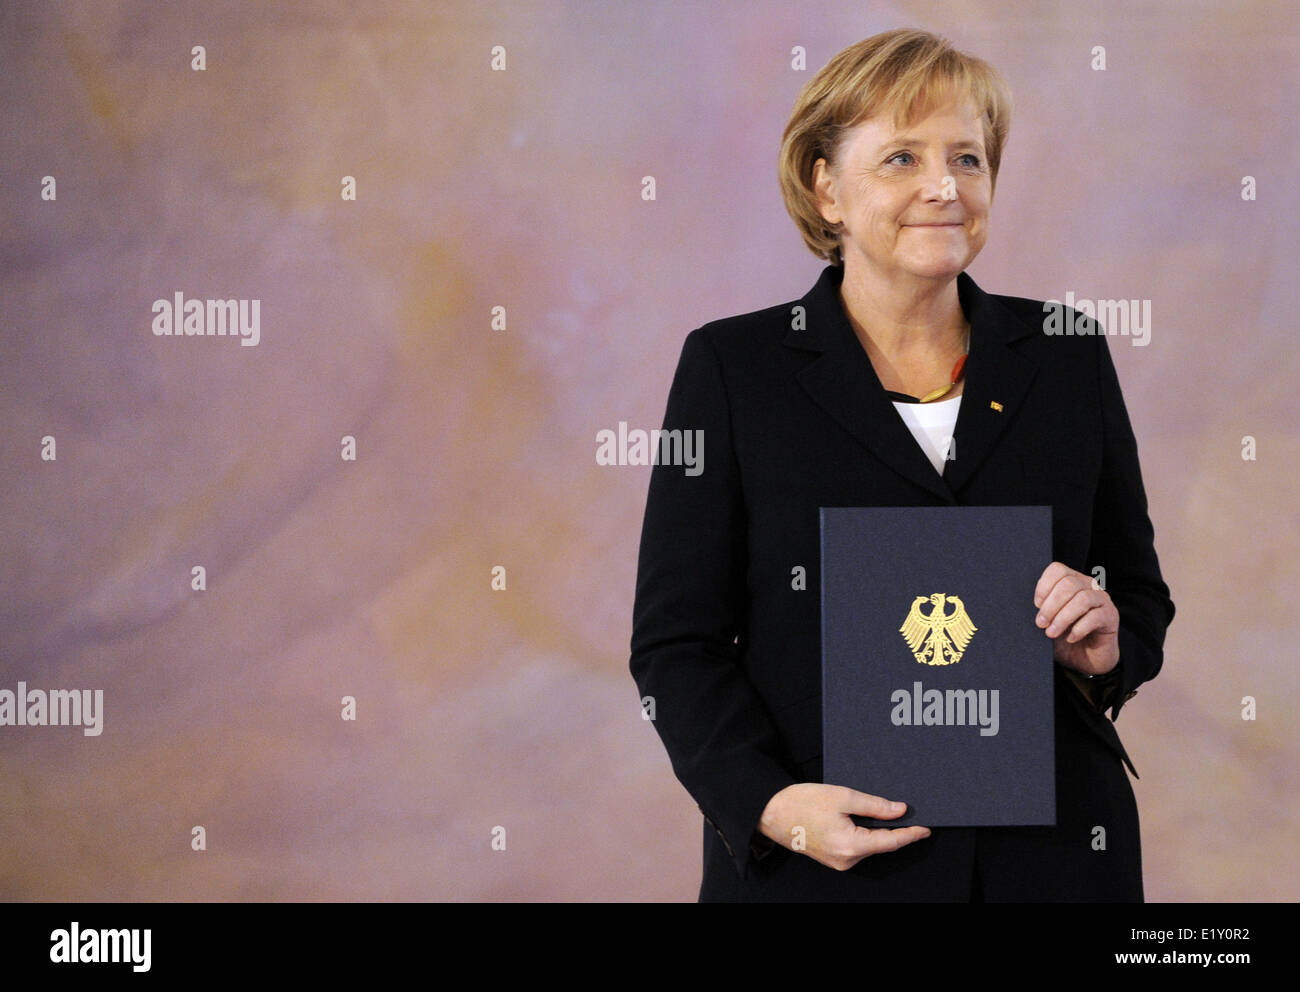 Chancellor Angela Merkel (CDU) holds her certificate of appointment in her hands (28.10.2009). Foto: Rainer Jensen - Stock Image